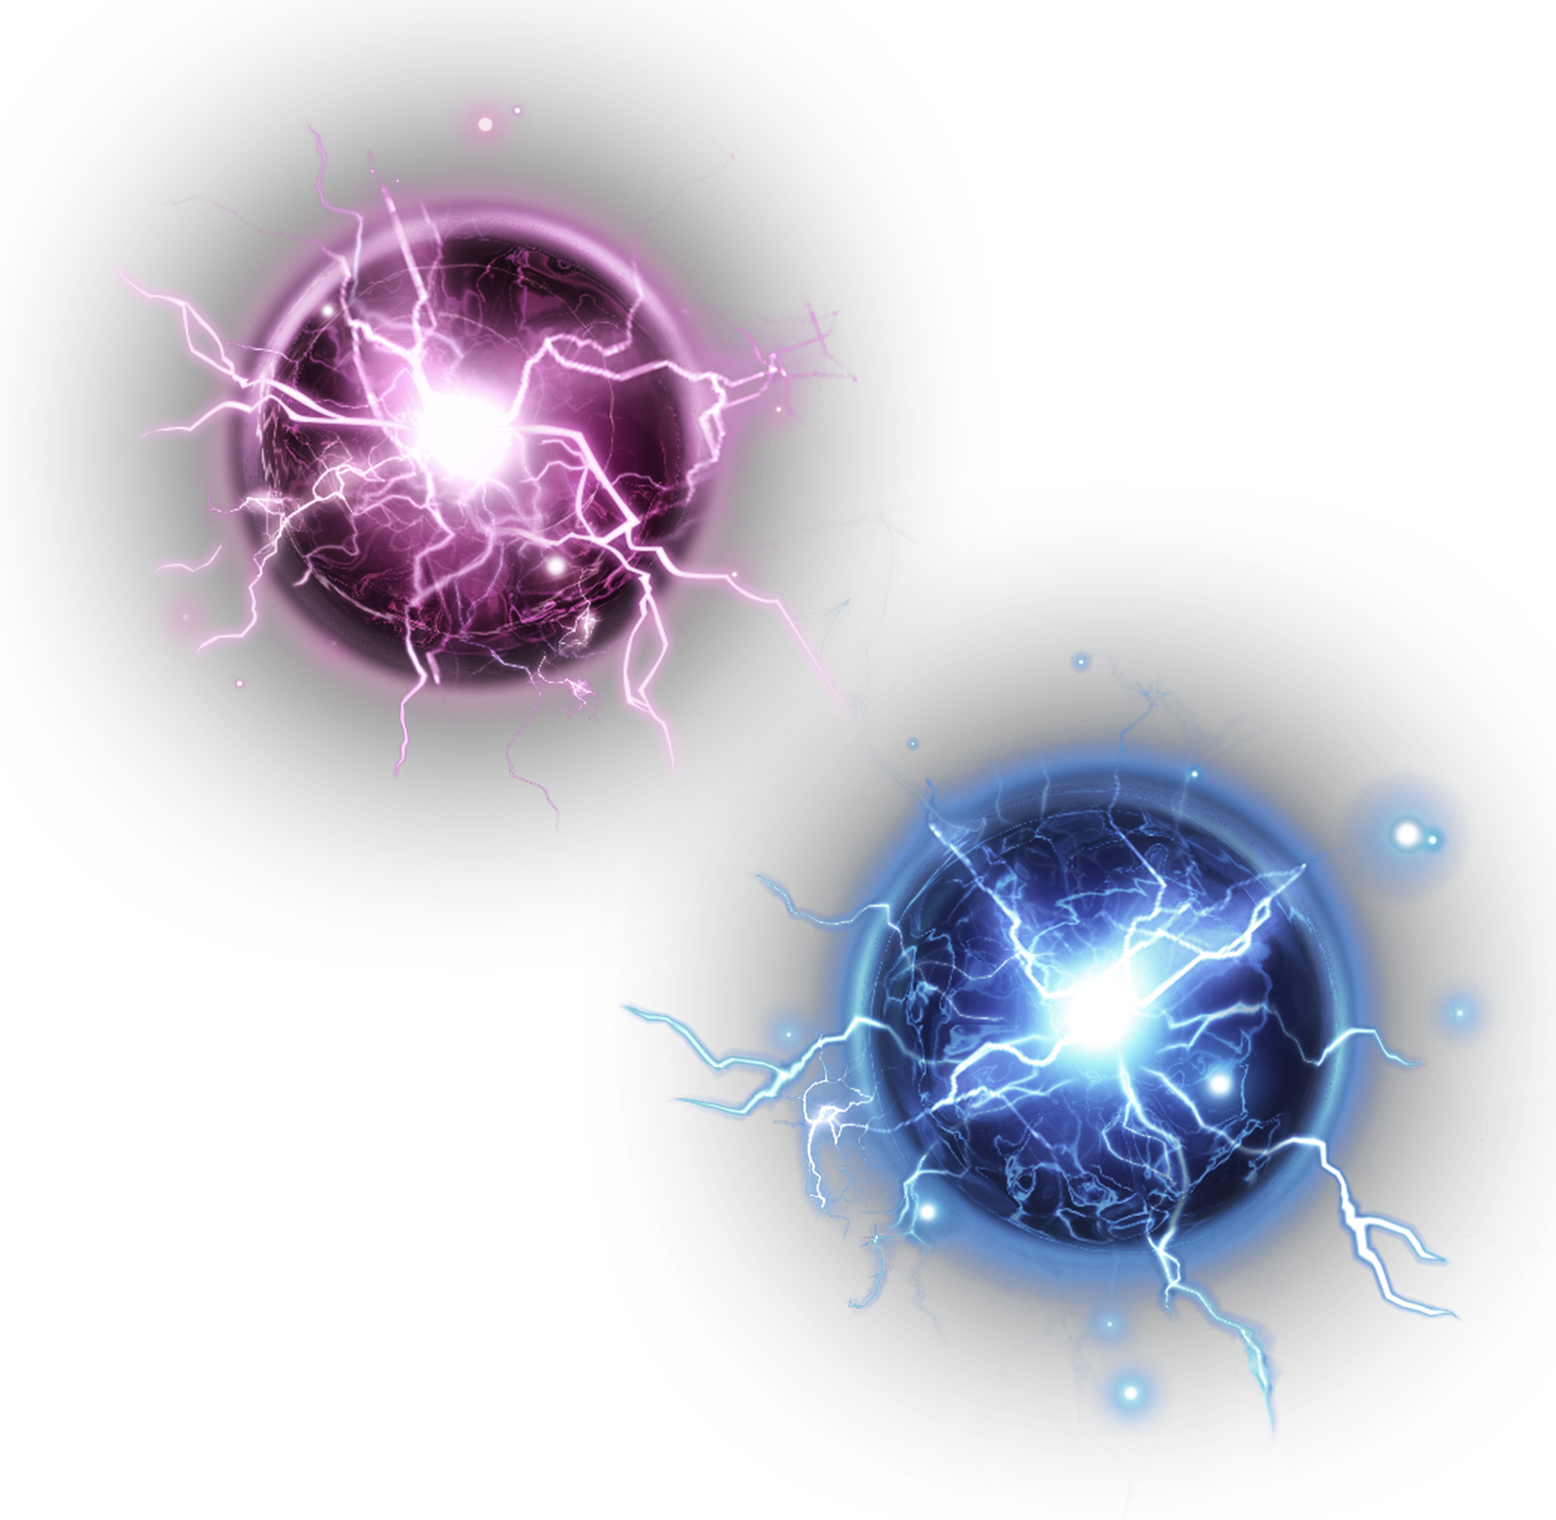 Electric spark png. Image dff kuja core